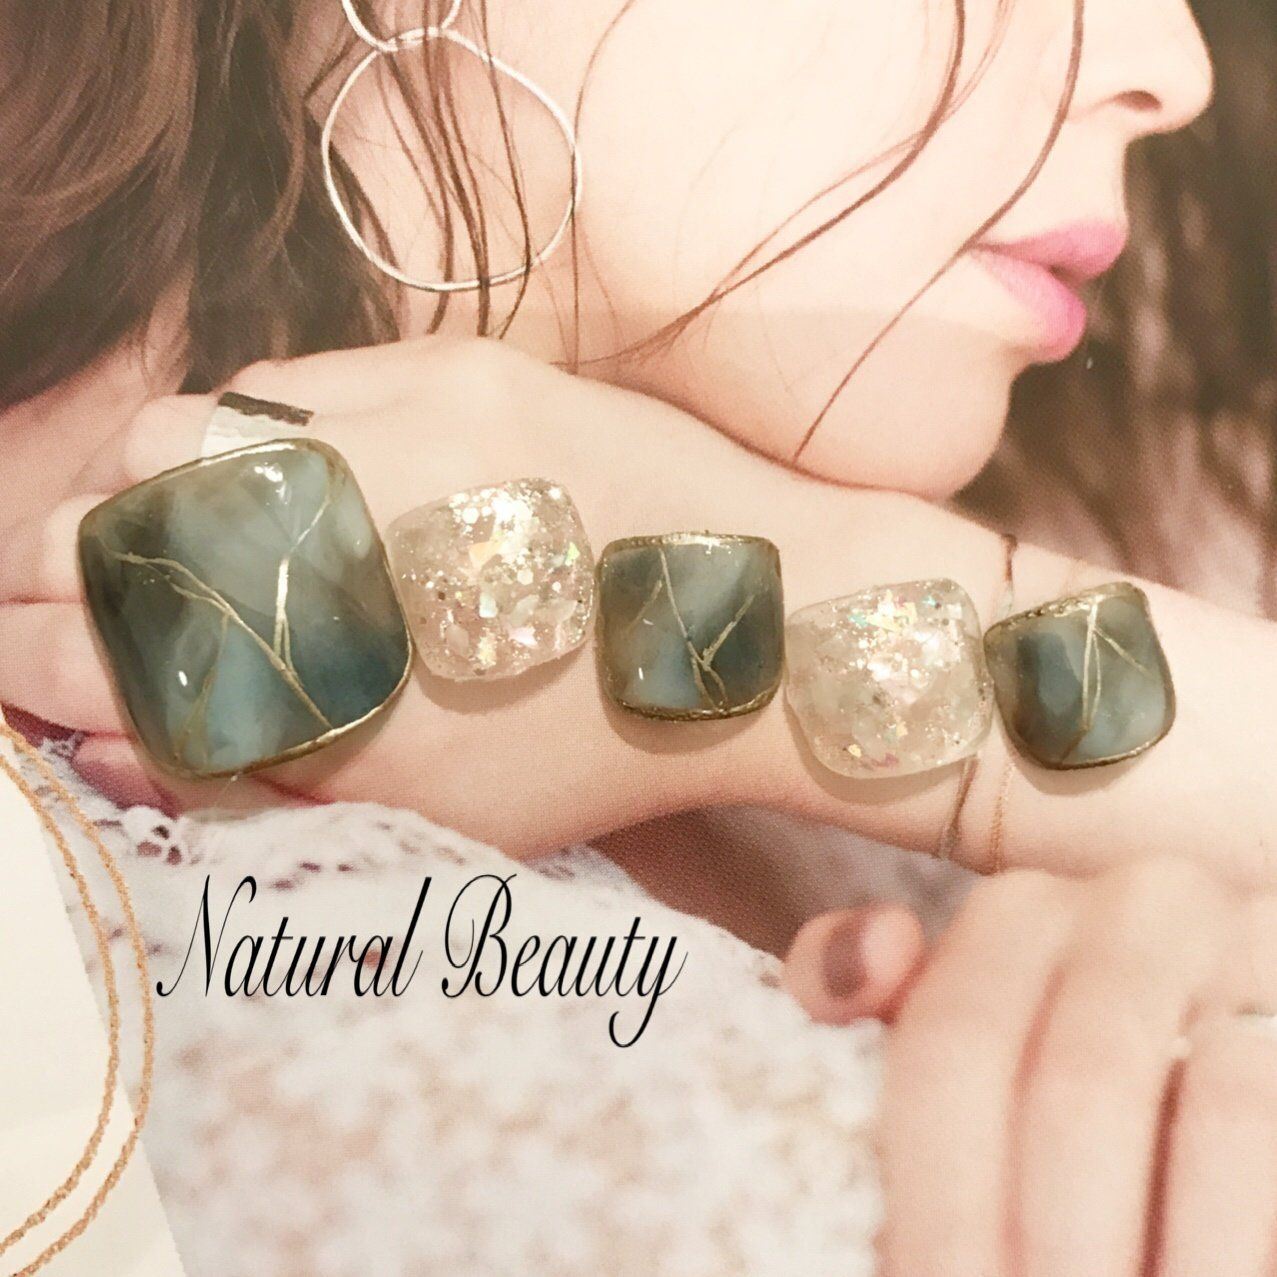 naturalbeautyのネイルデザイン[No 3384119]|ネイルブック is part of nails - No 1のネイルブック